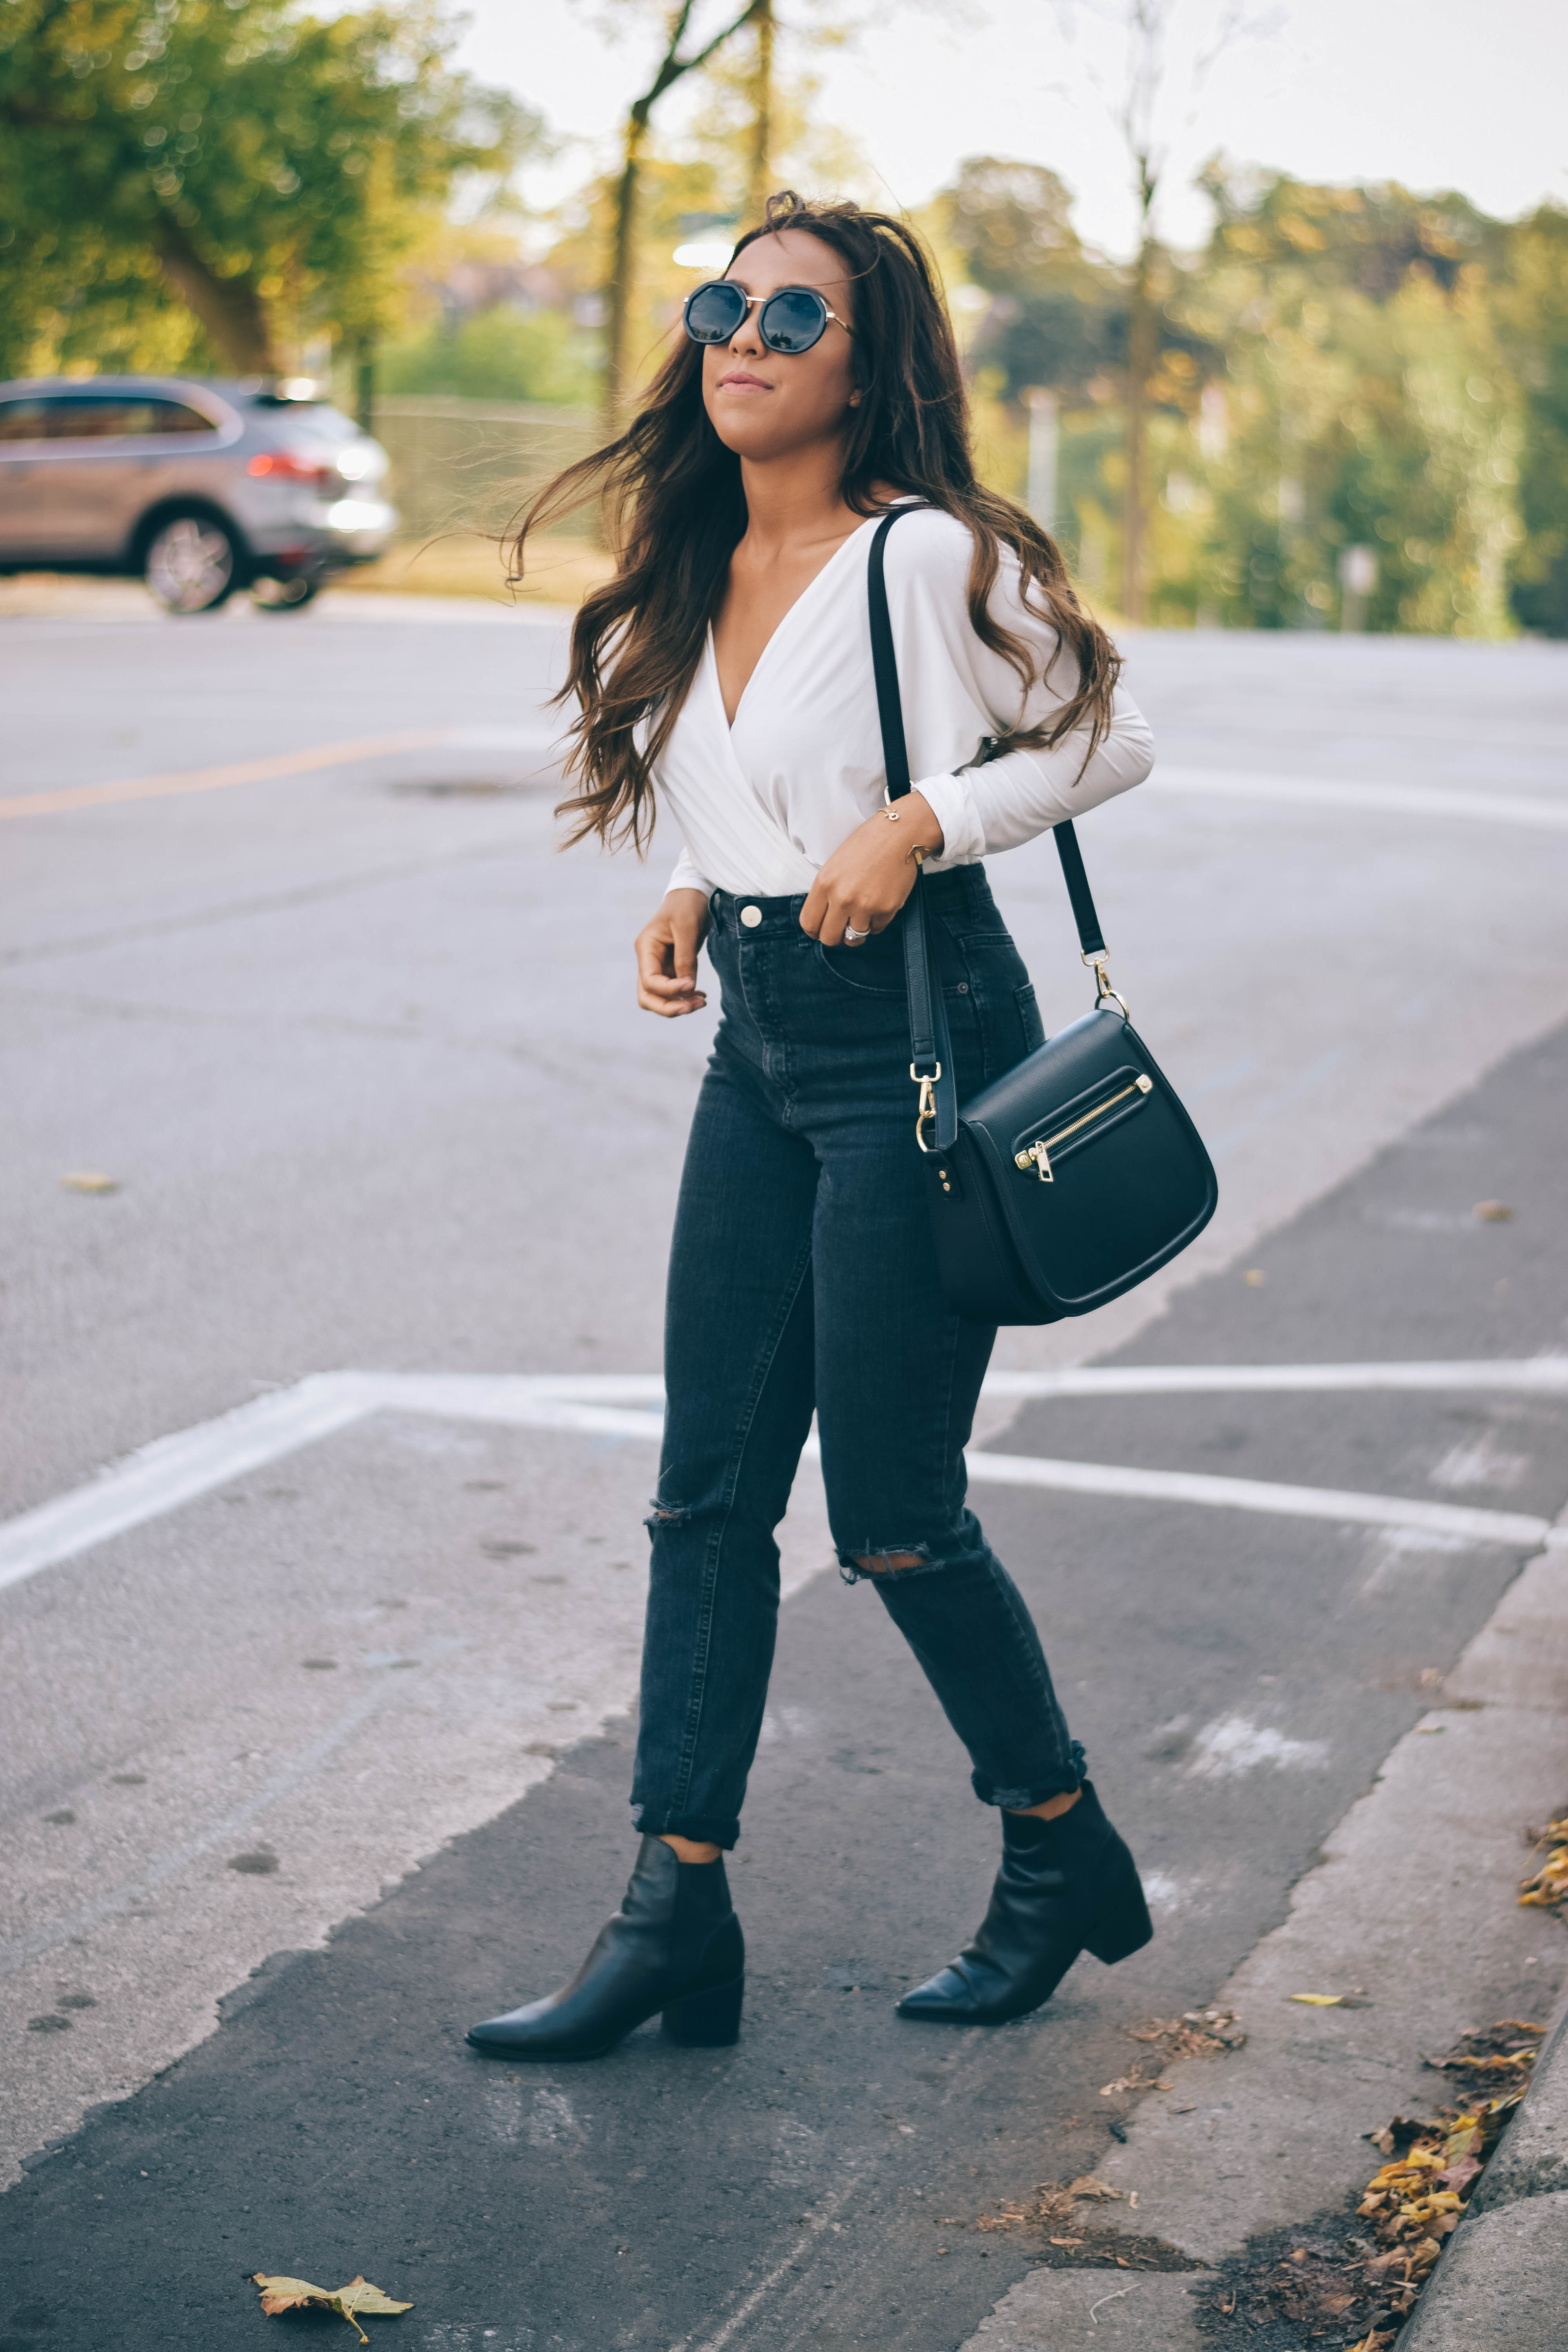 Fashion Blogger Lauren Sheriff of Basic Babe in ASOS Fairleigh Jeans and Missguided Bodysuit